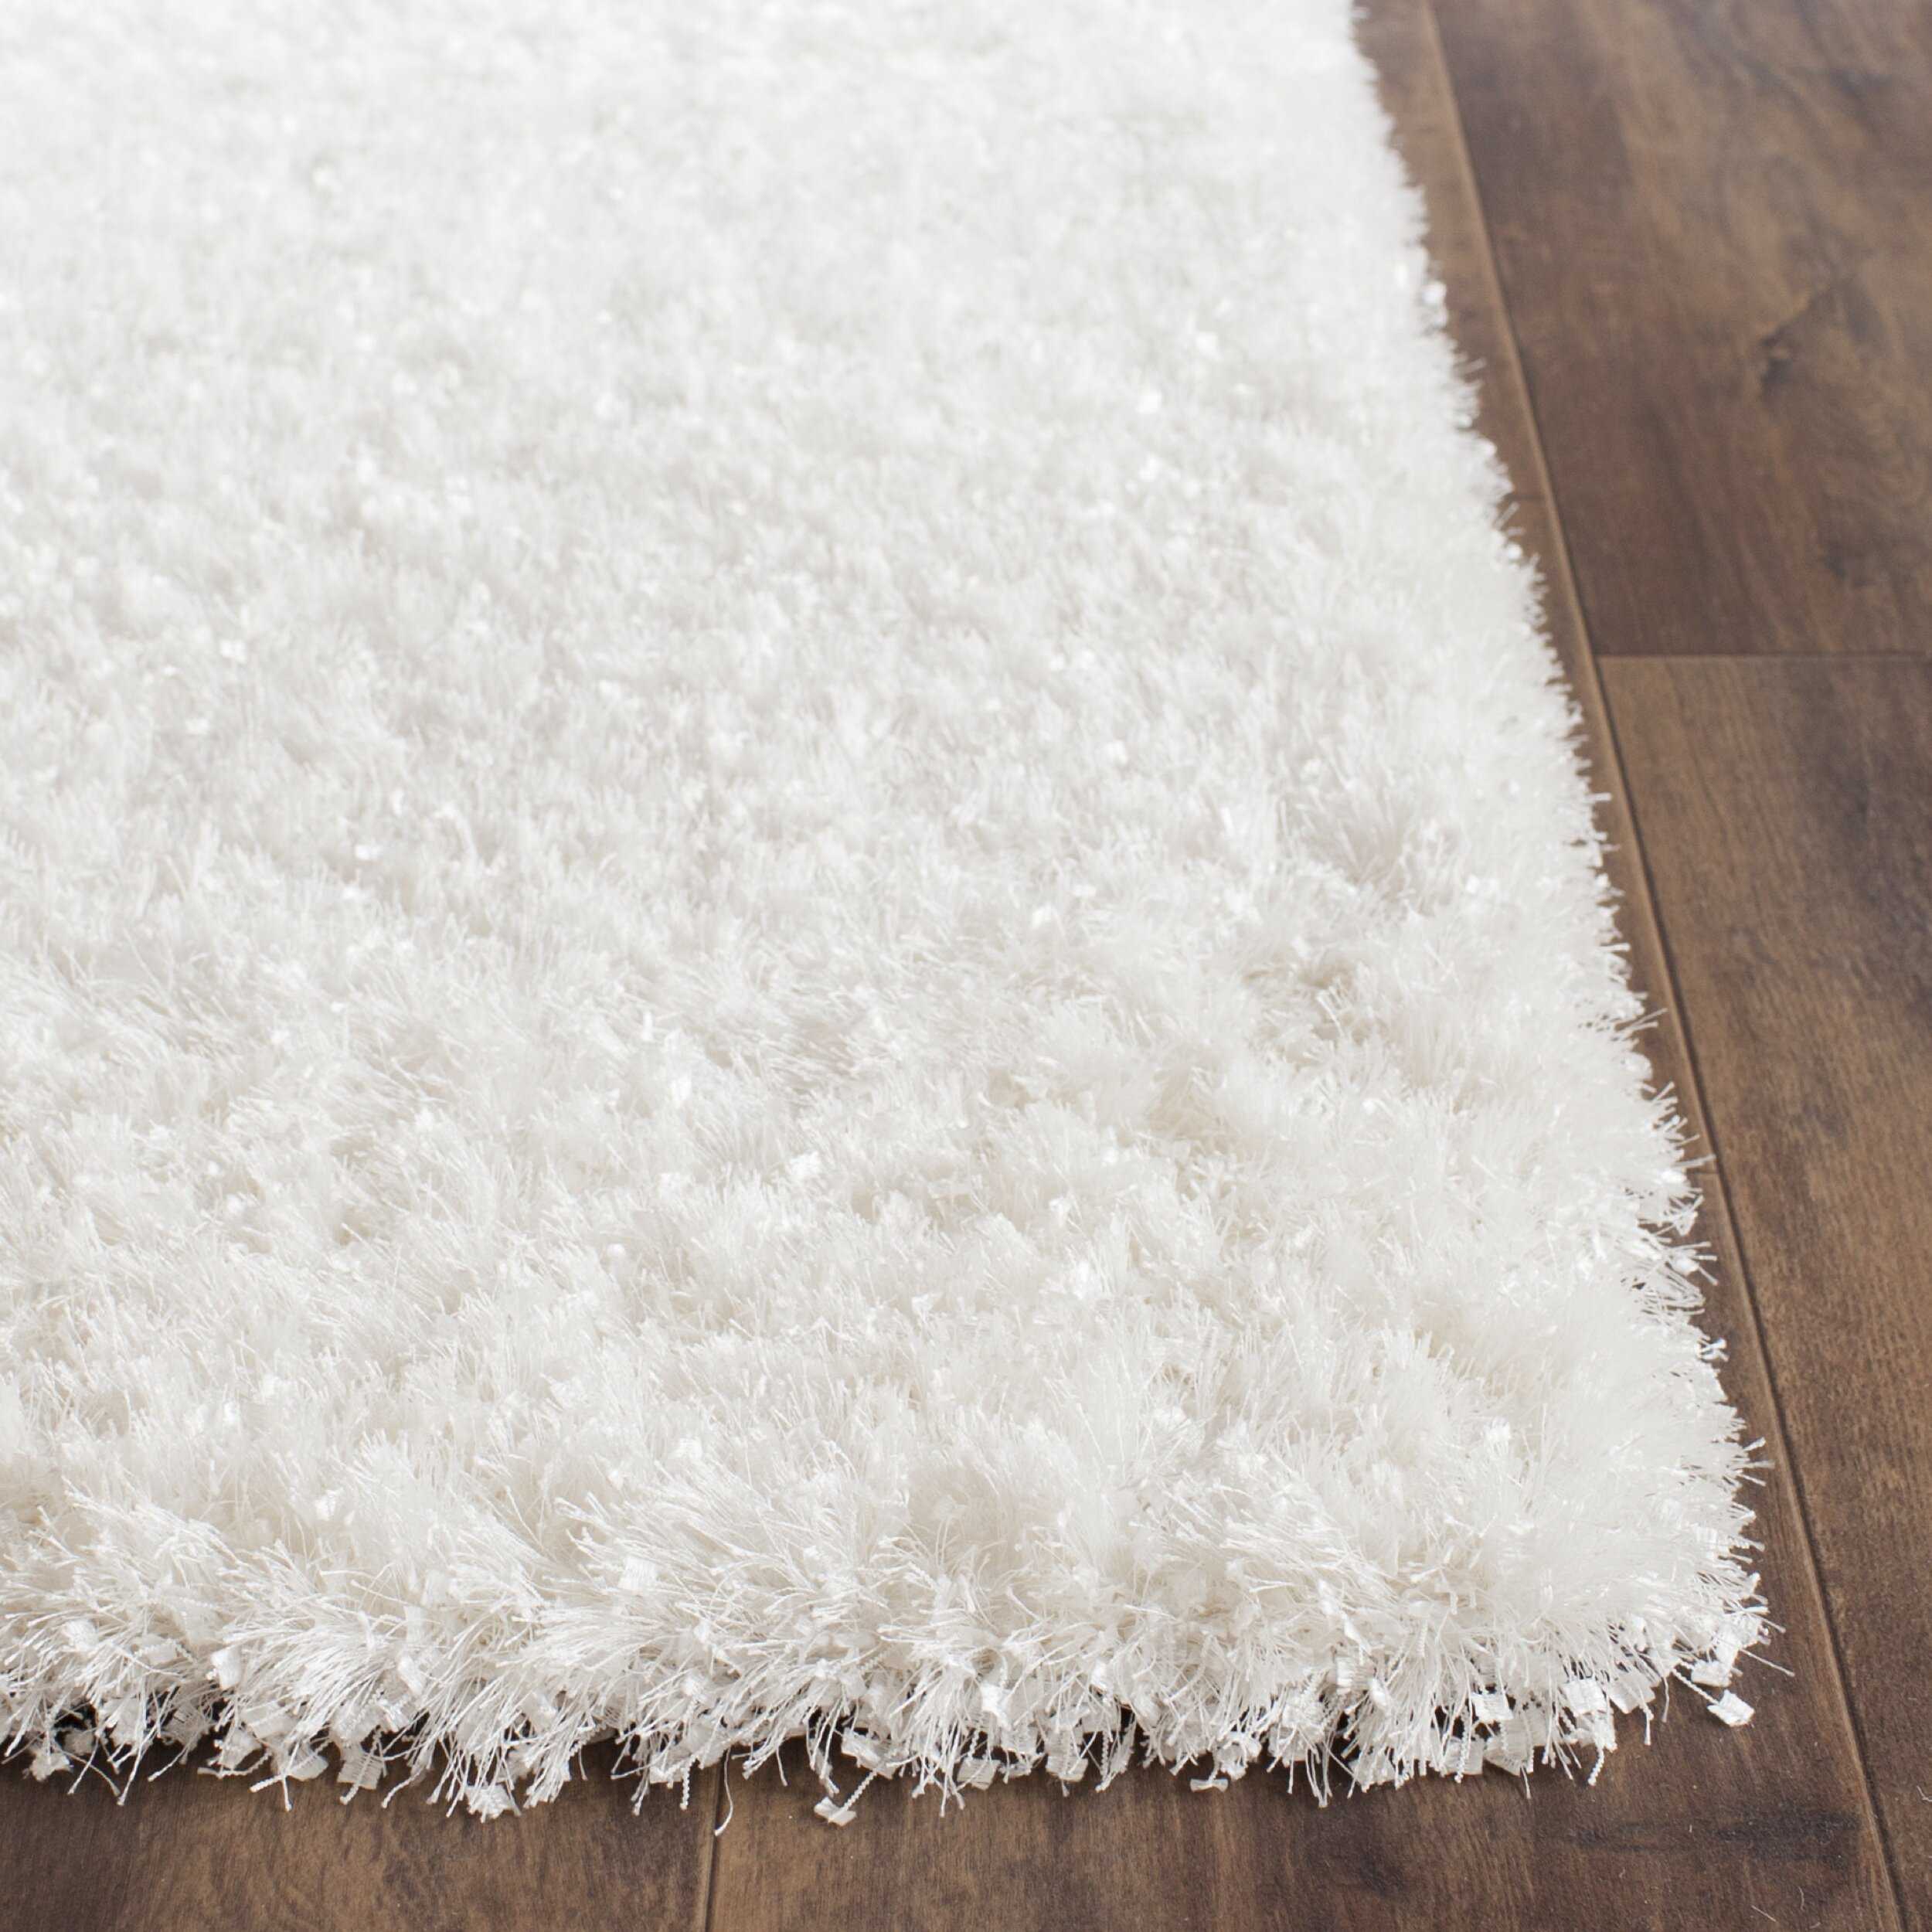 Safavieh malibu white shag area rug reviews wayfair for White area rug